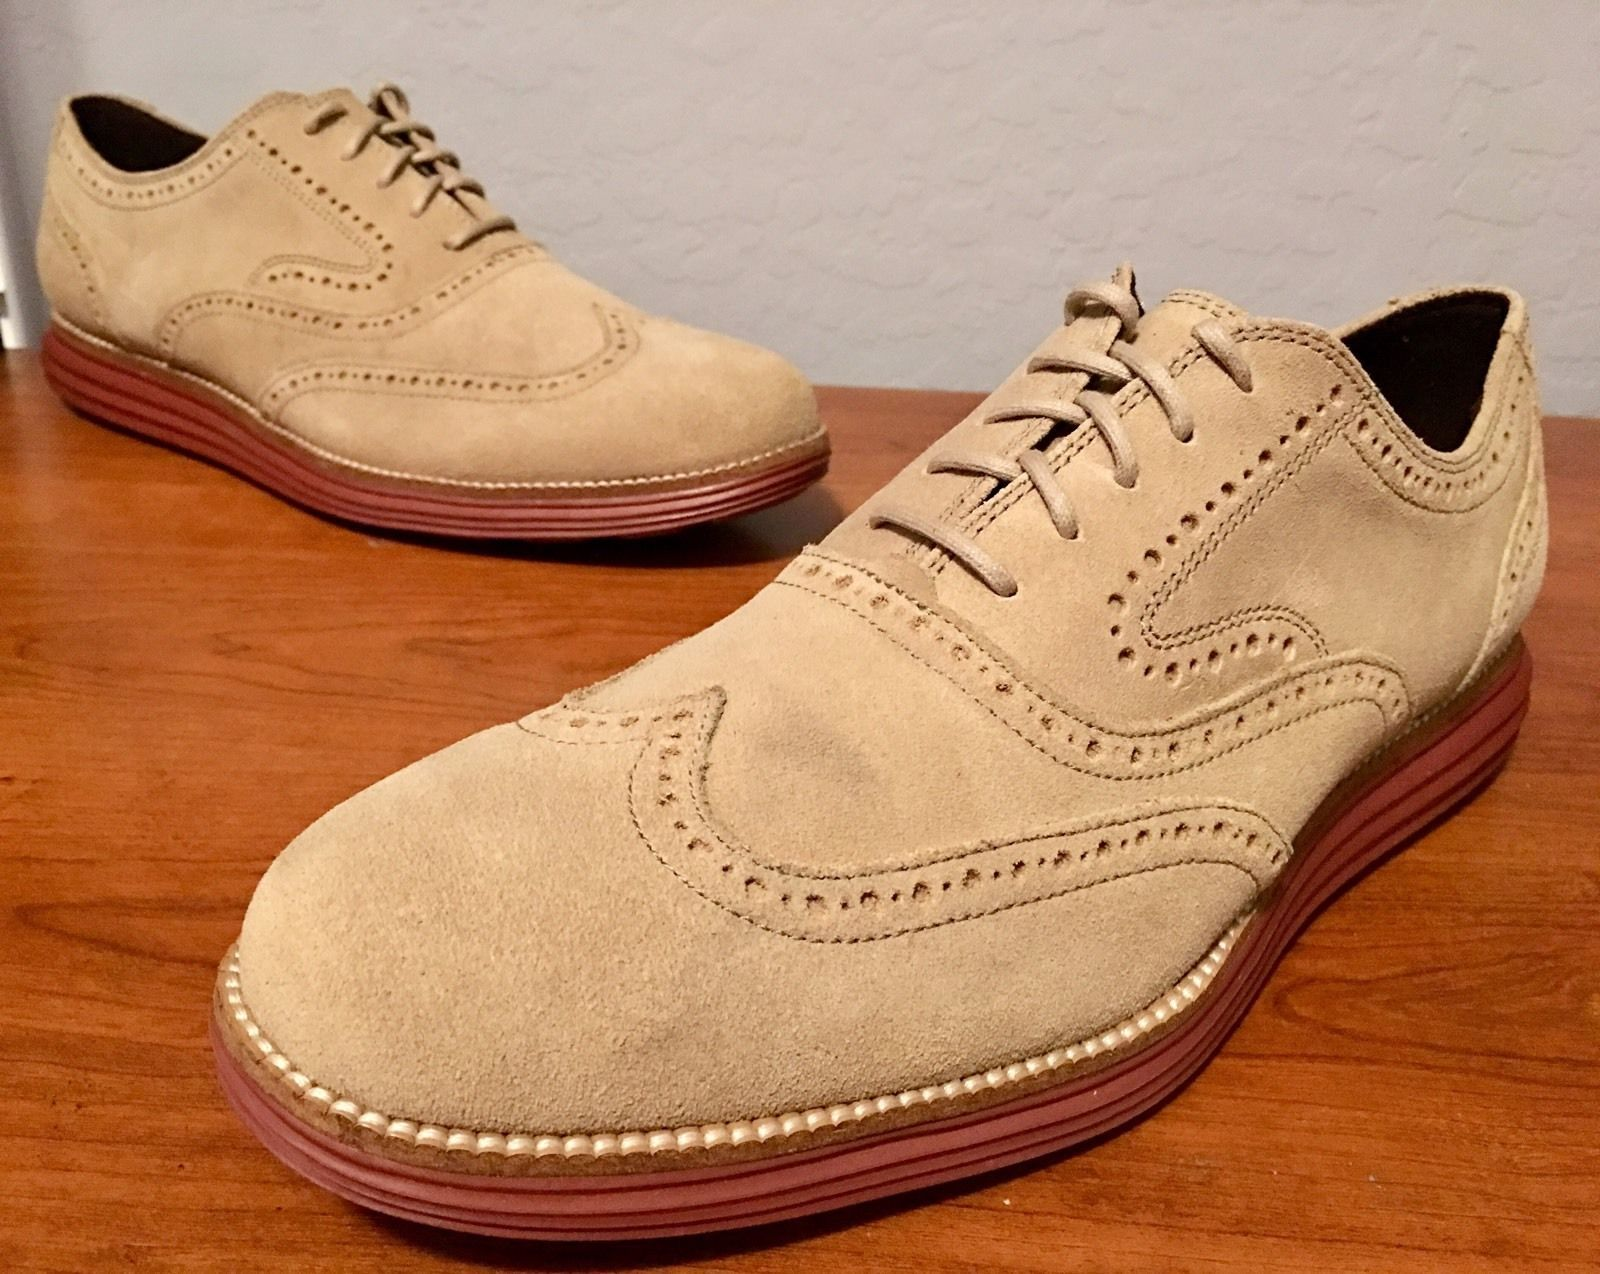 Cole Haan Grand OS Original Wingtip Milkshake Tan C21132 Men's Size 11.5